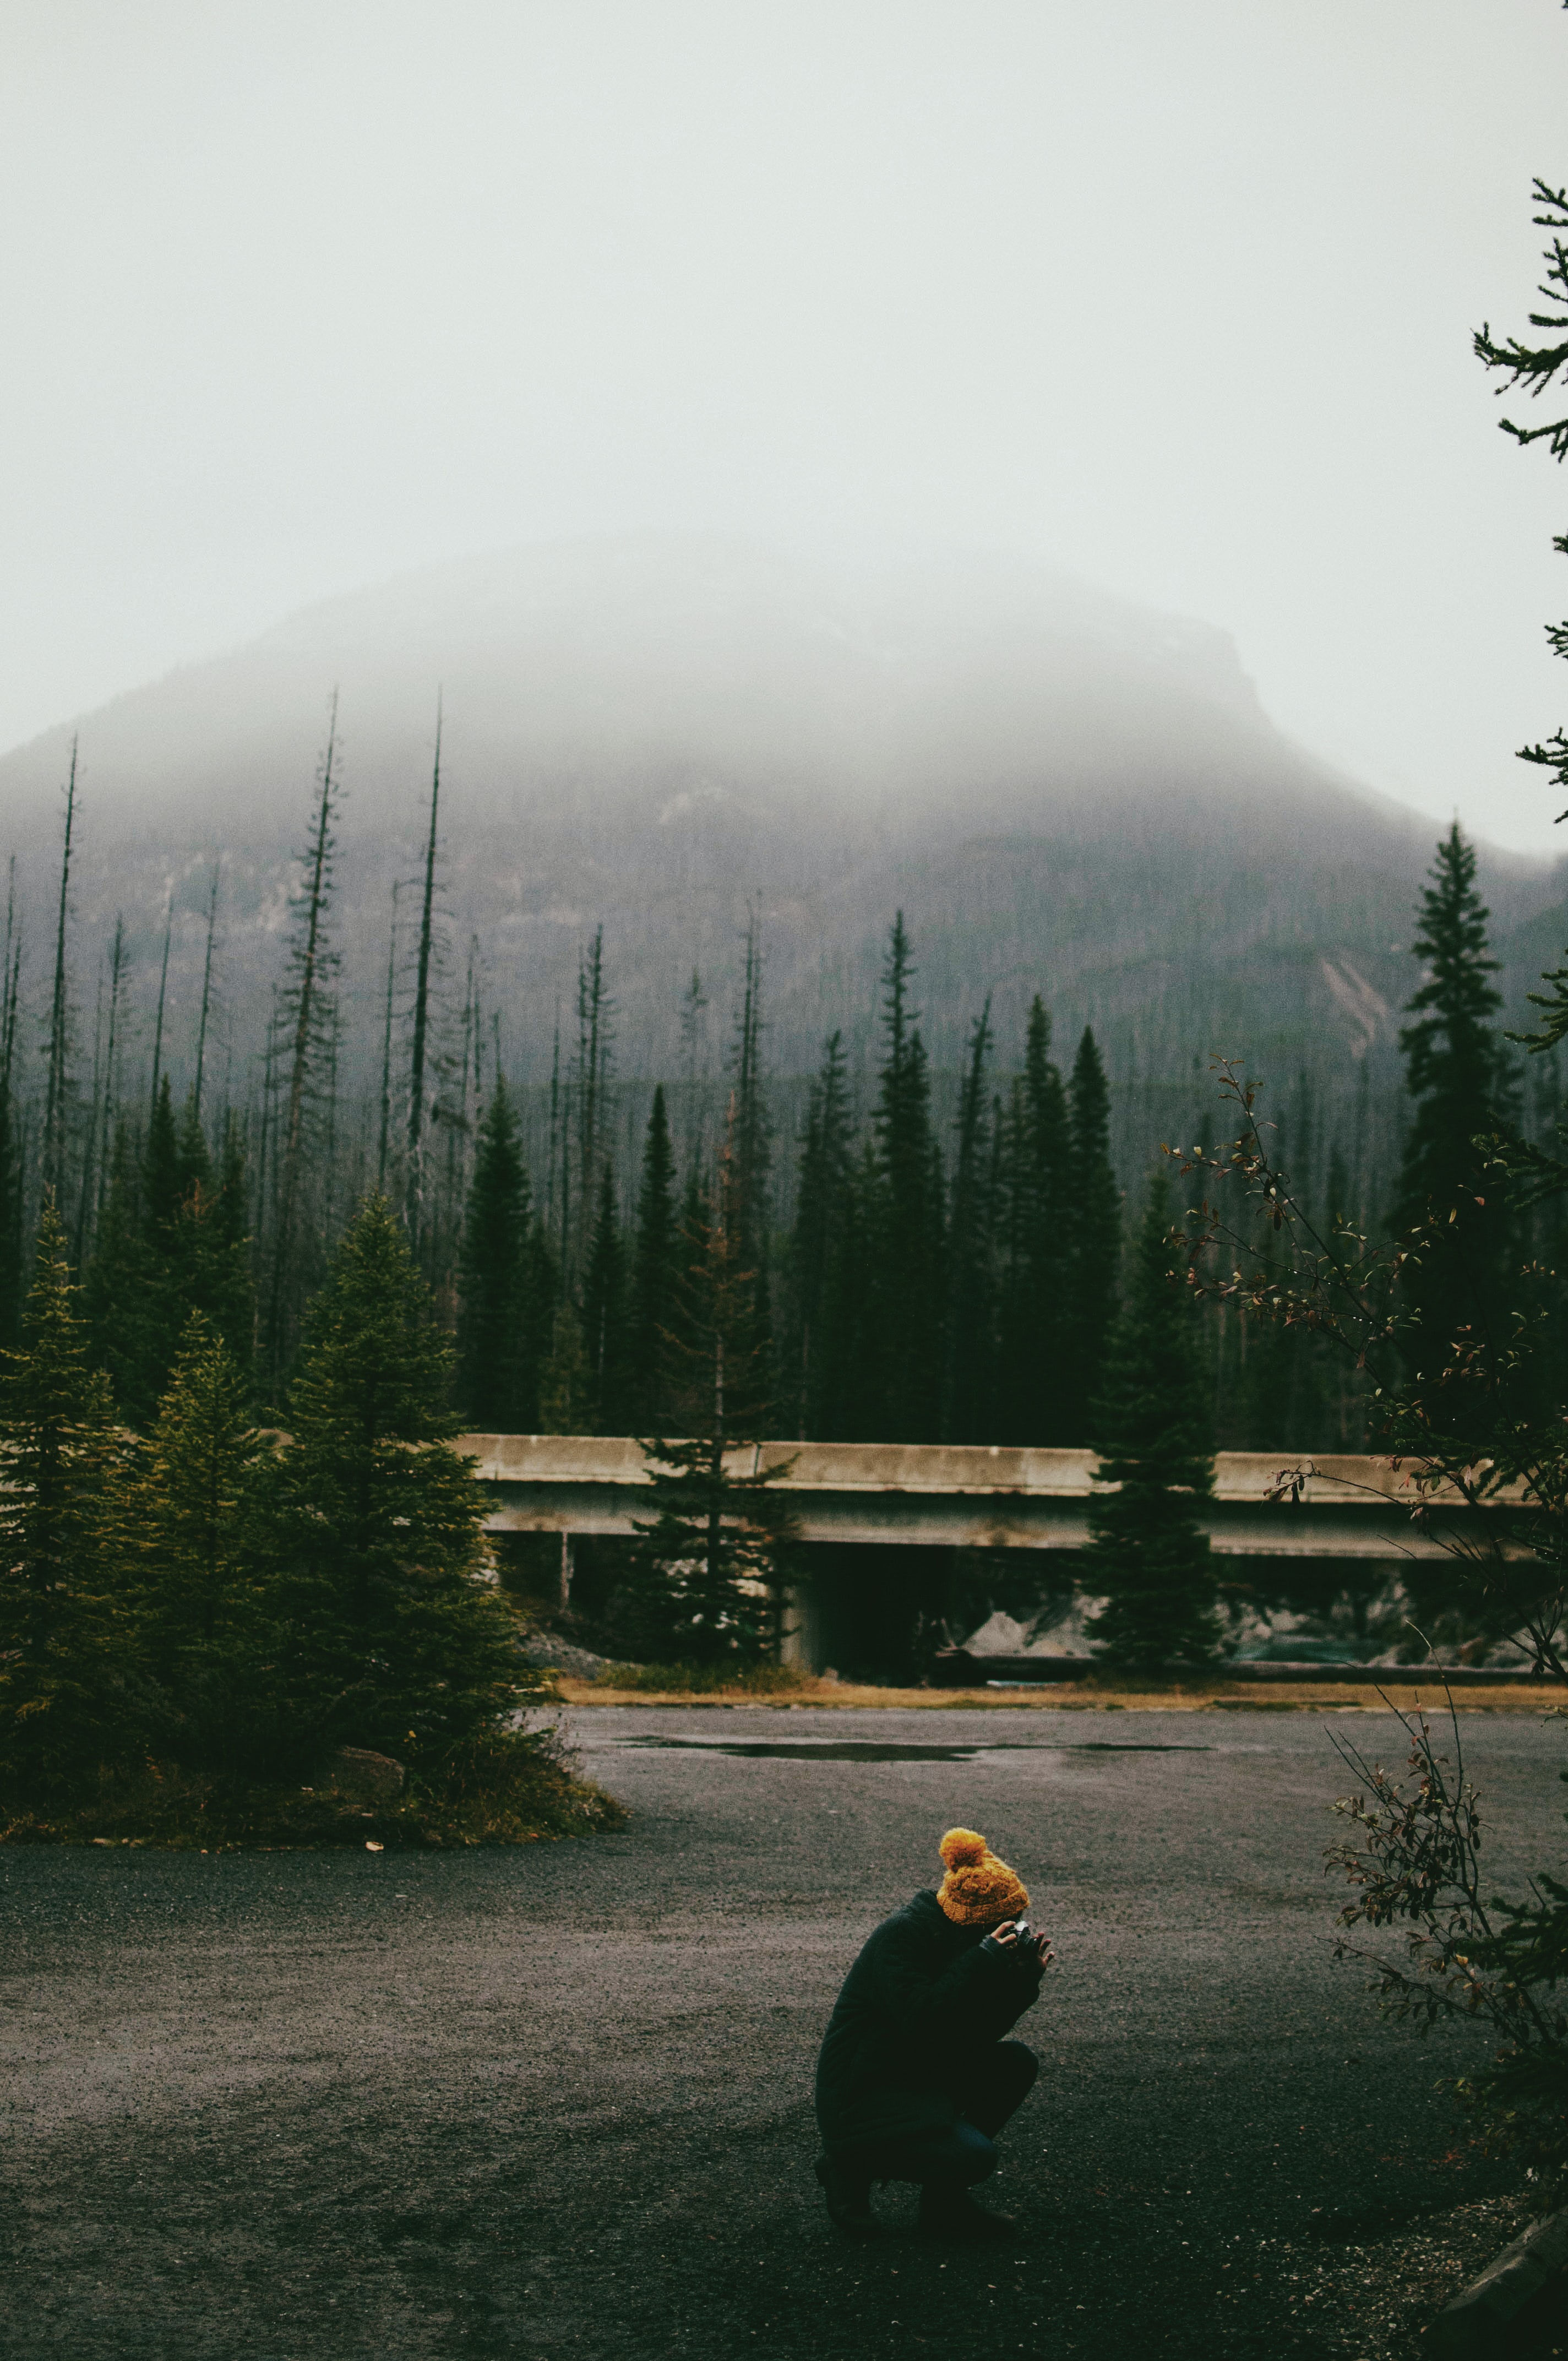 person near foggy mountain with trees